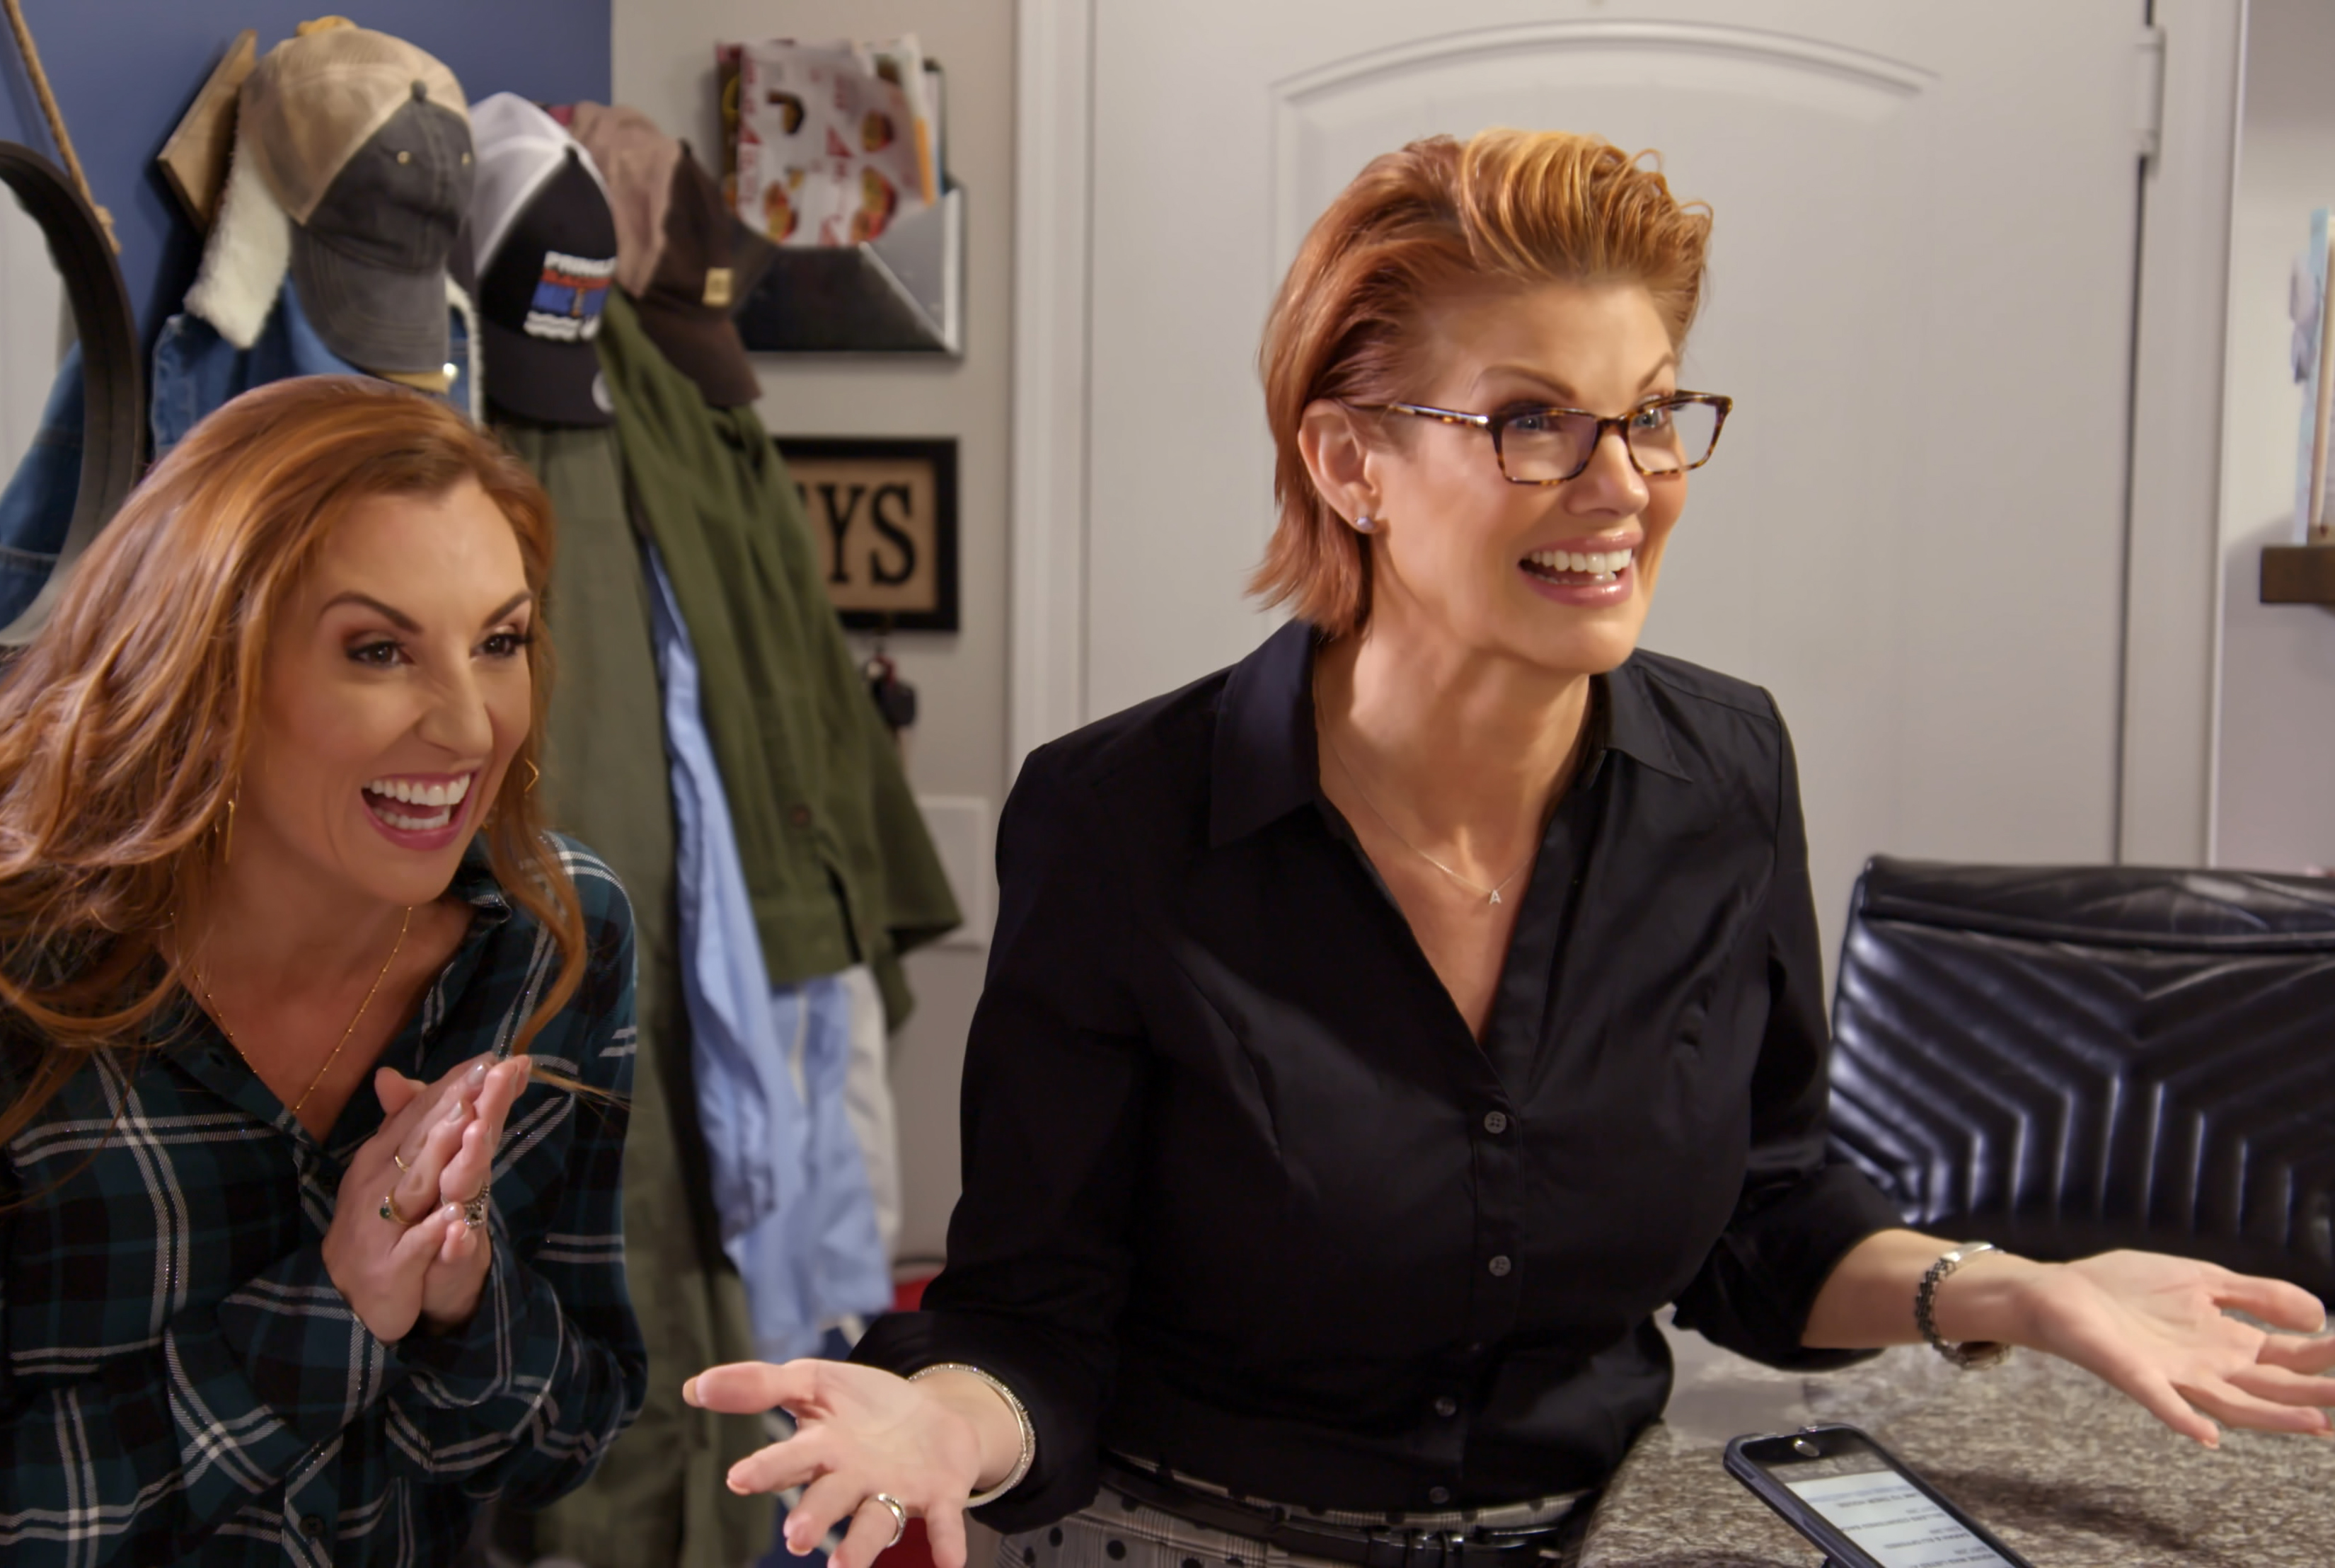 Wedding planner Sarah Miller and real estate agent Nichole Holmes compete to convince a couple to choose to invest in a wedding or a home